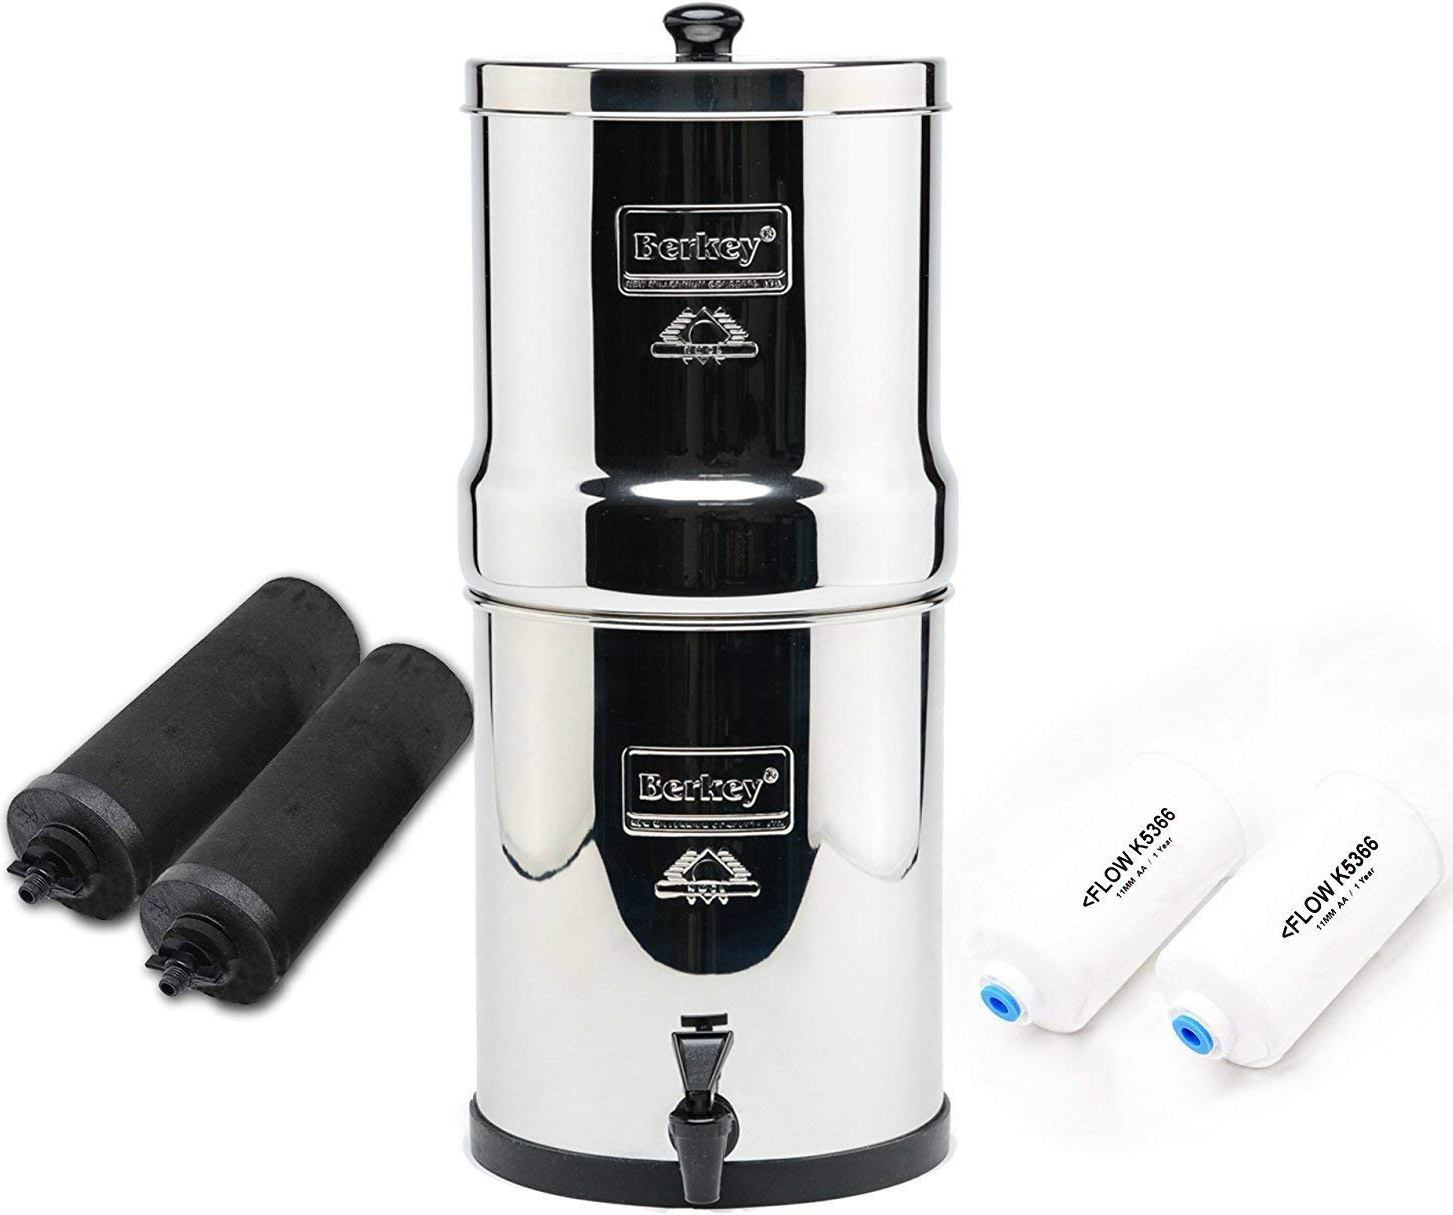 The Travel Berkey Water Filter